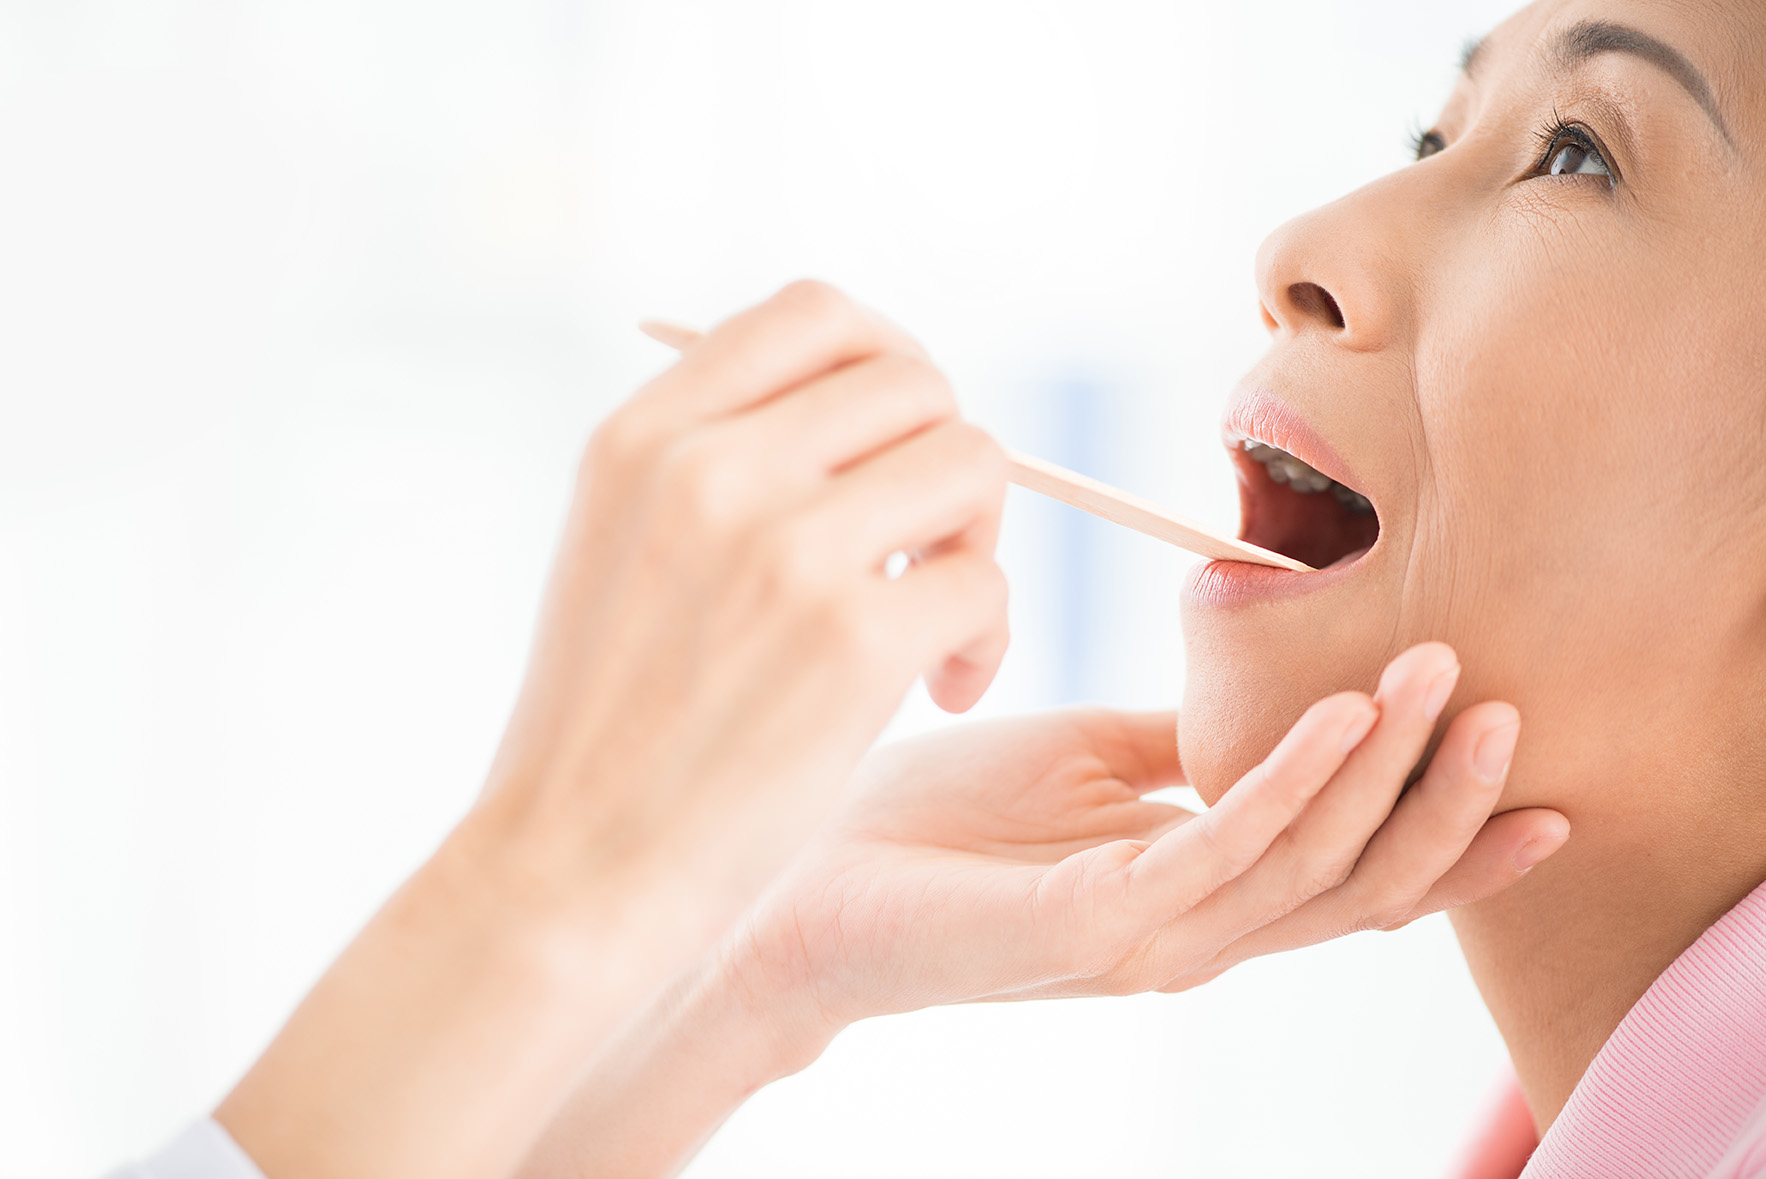 oral An example of oral used as an adjective is the phrase oral presentation which means a presentation delivered by speaking an example of oral used as an adjective is the phrase oral disease which means an illness in the mouth.